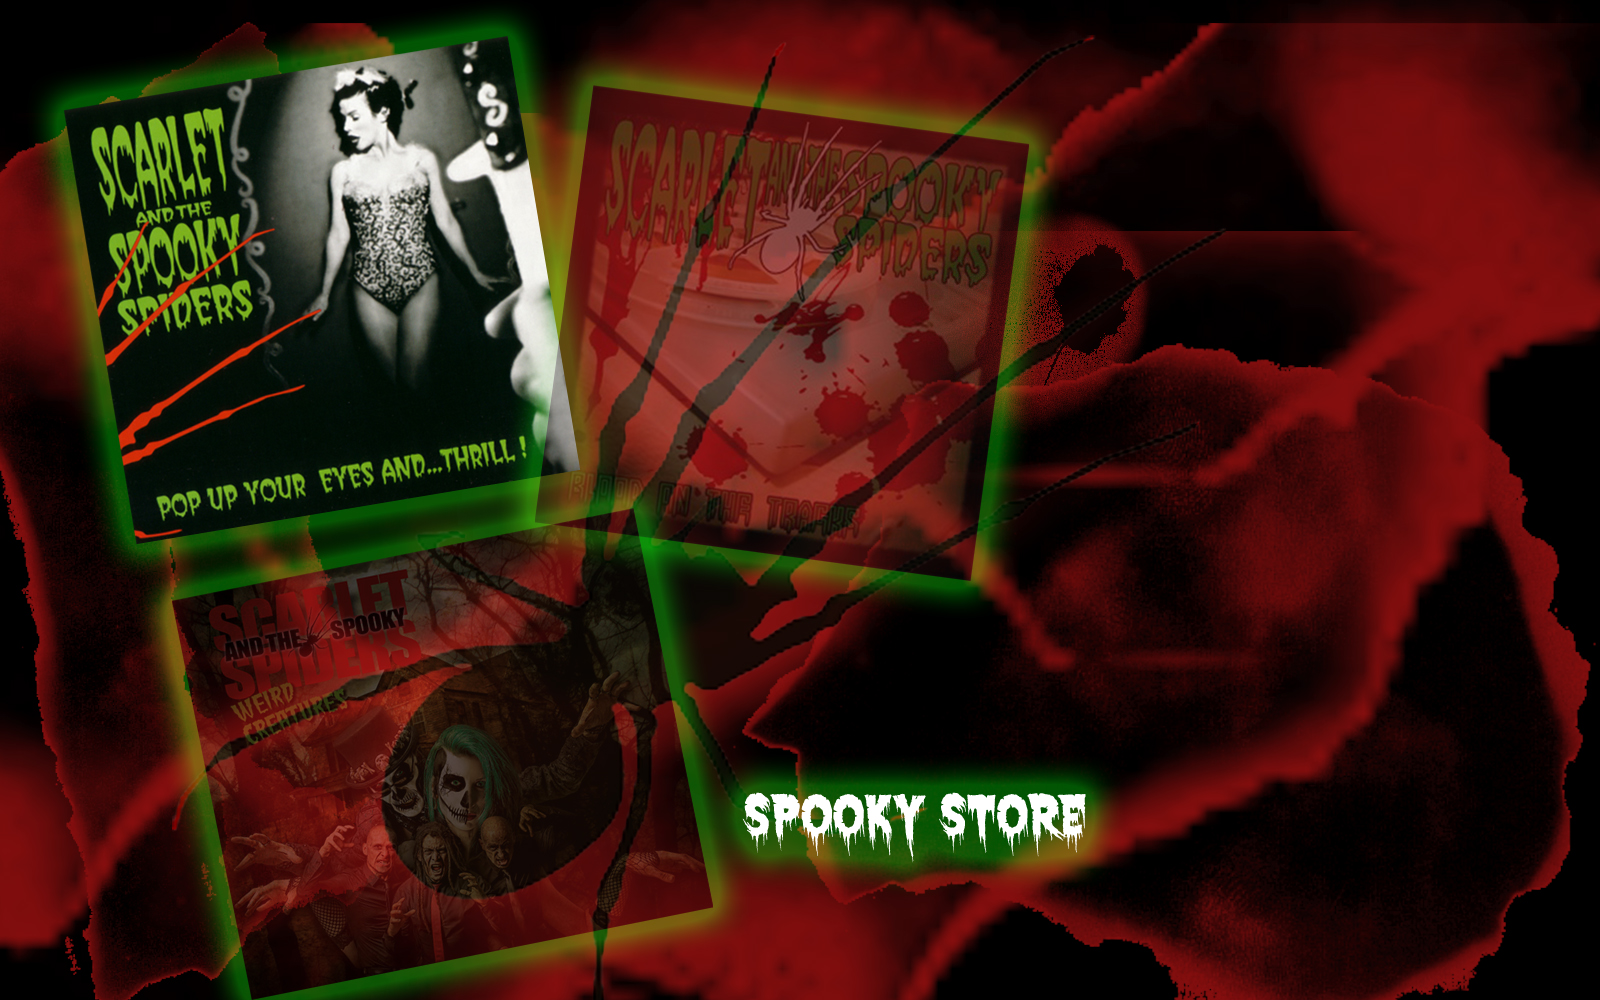 Pop Up Your Eyes and … Thrill ! first scarlet and the spooky spiders album